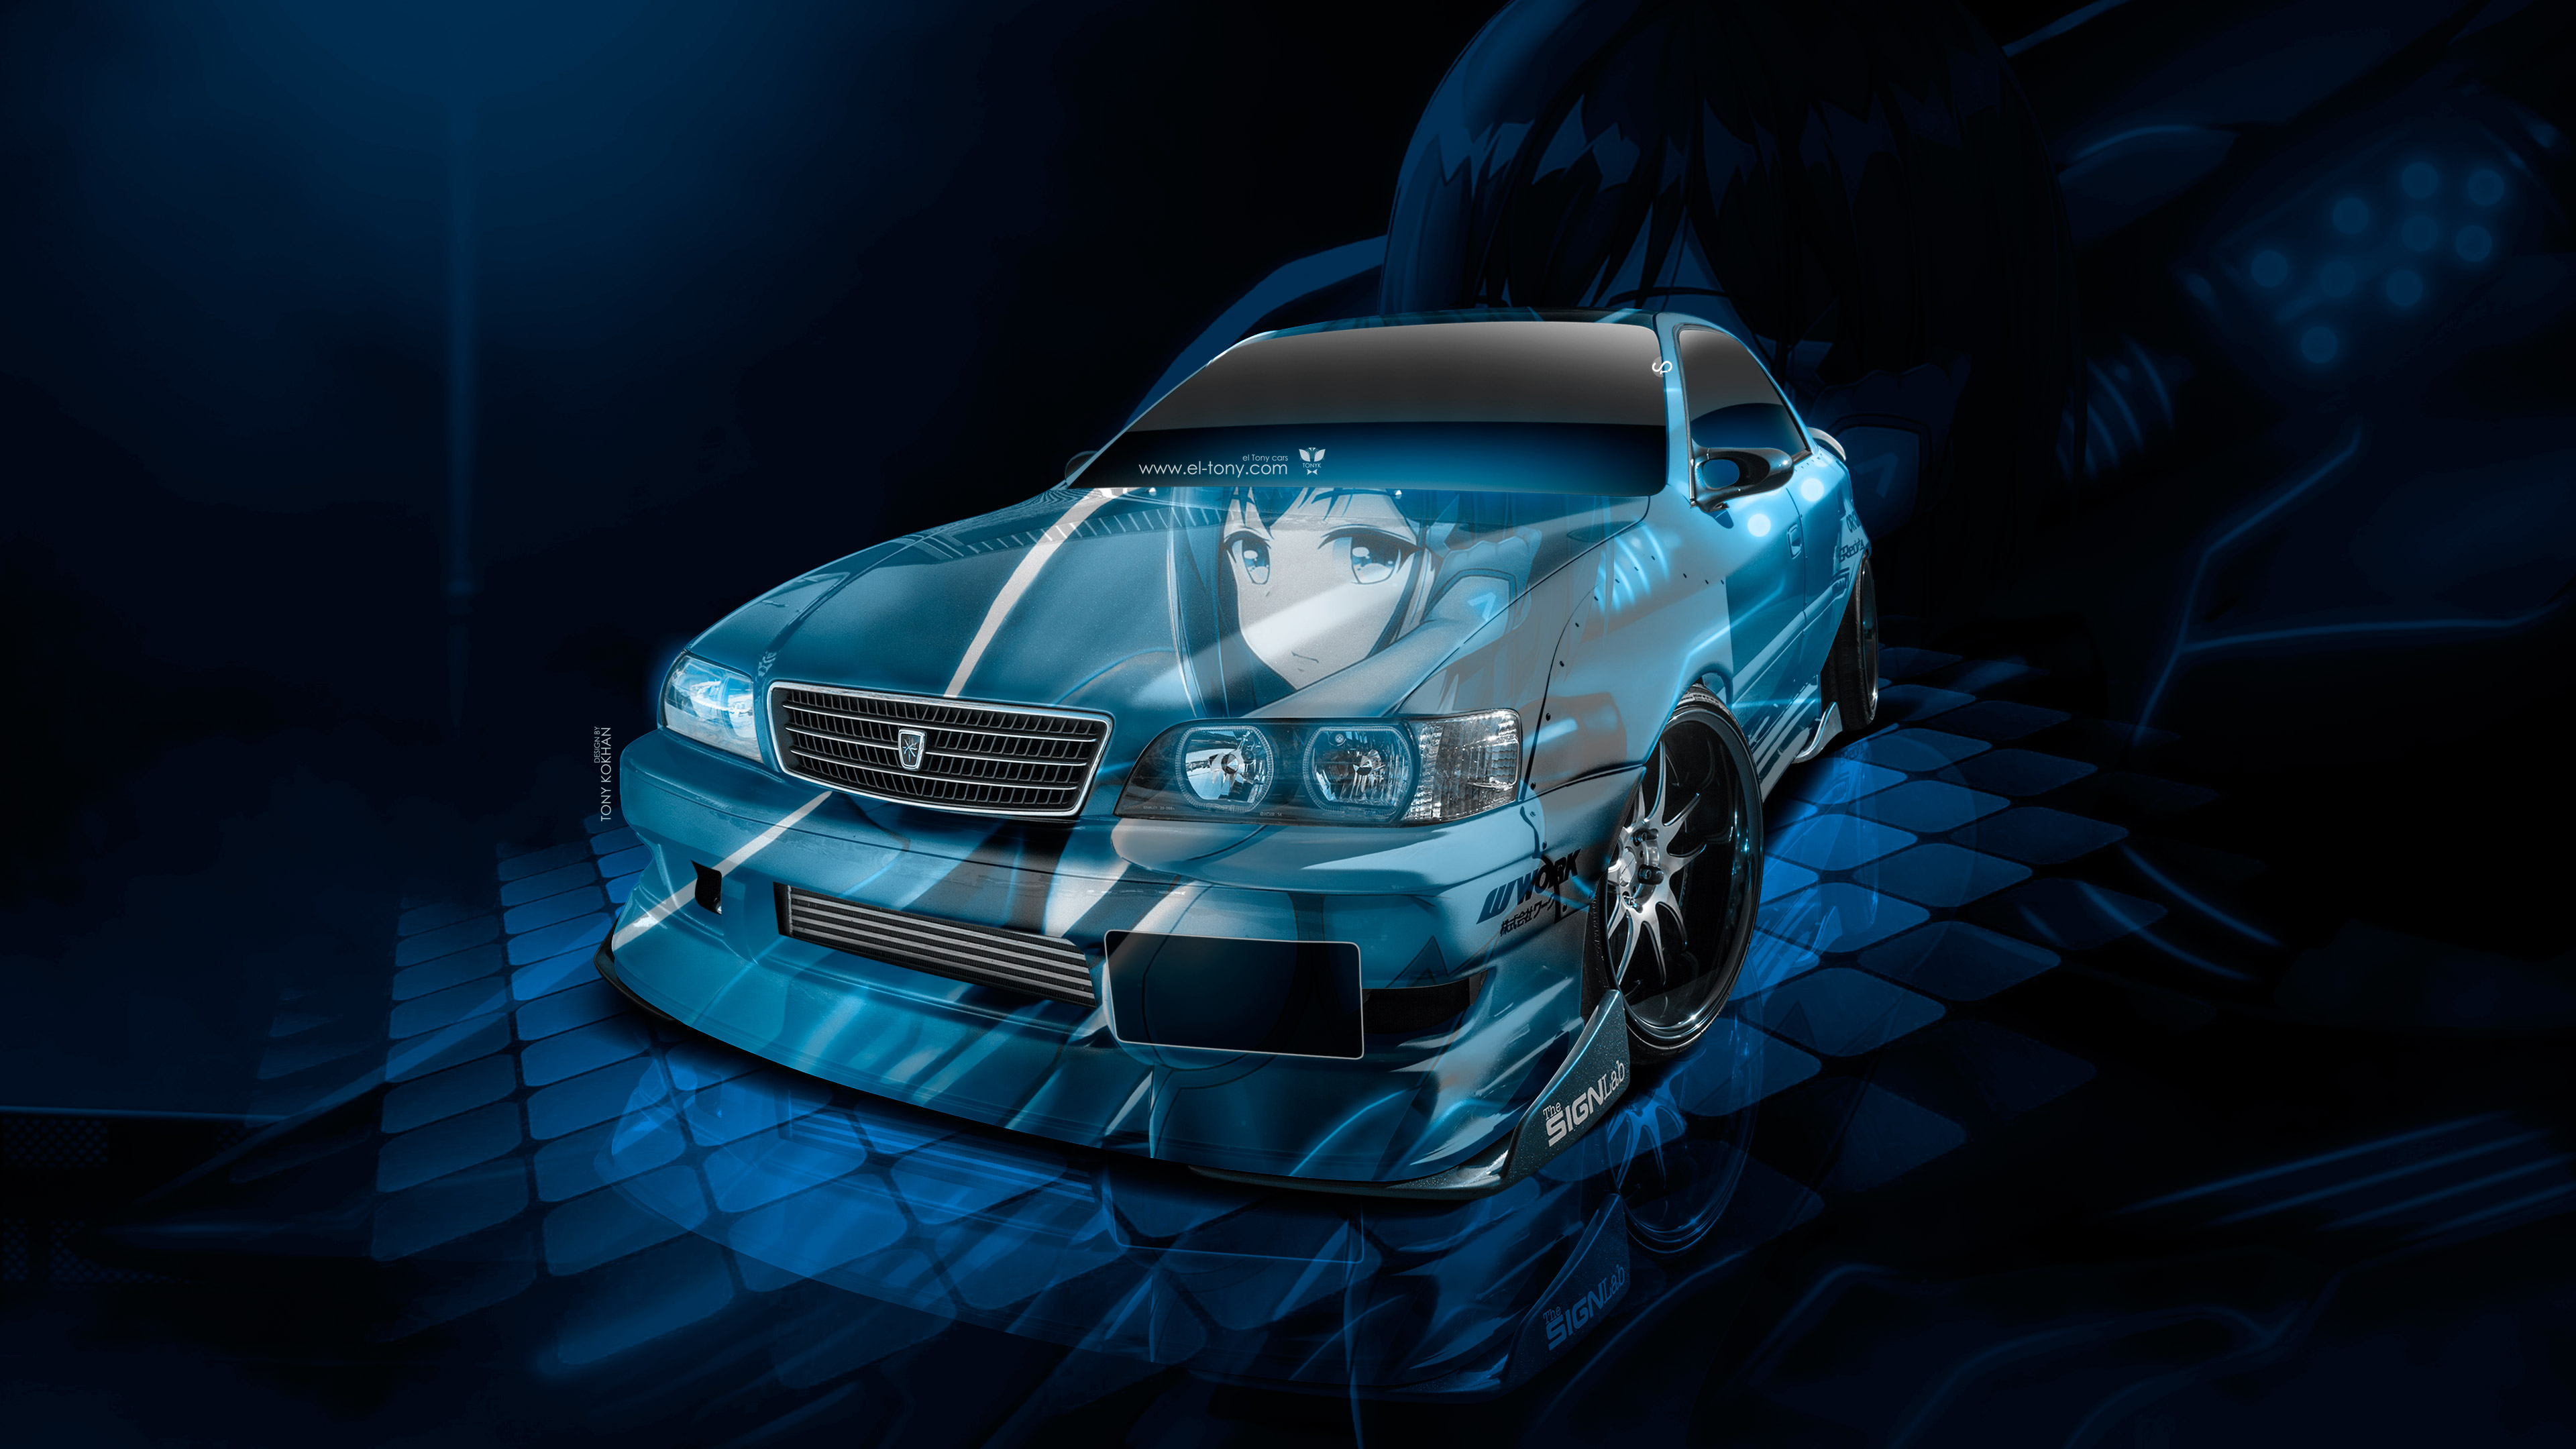 Toyota-Chaser-JZX100-JDM-Tuning-3D-Super-Anime-Girl-Aerography-Vinyl-Art-Car-2018-Blue-Colors-4K-Wallpapers-design-by-Tony-Kokhan-www.el-tony.com-image